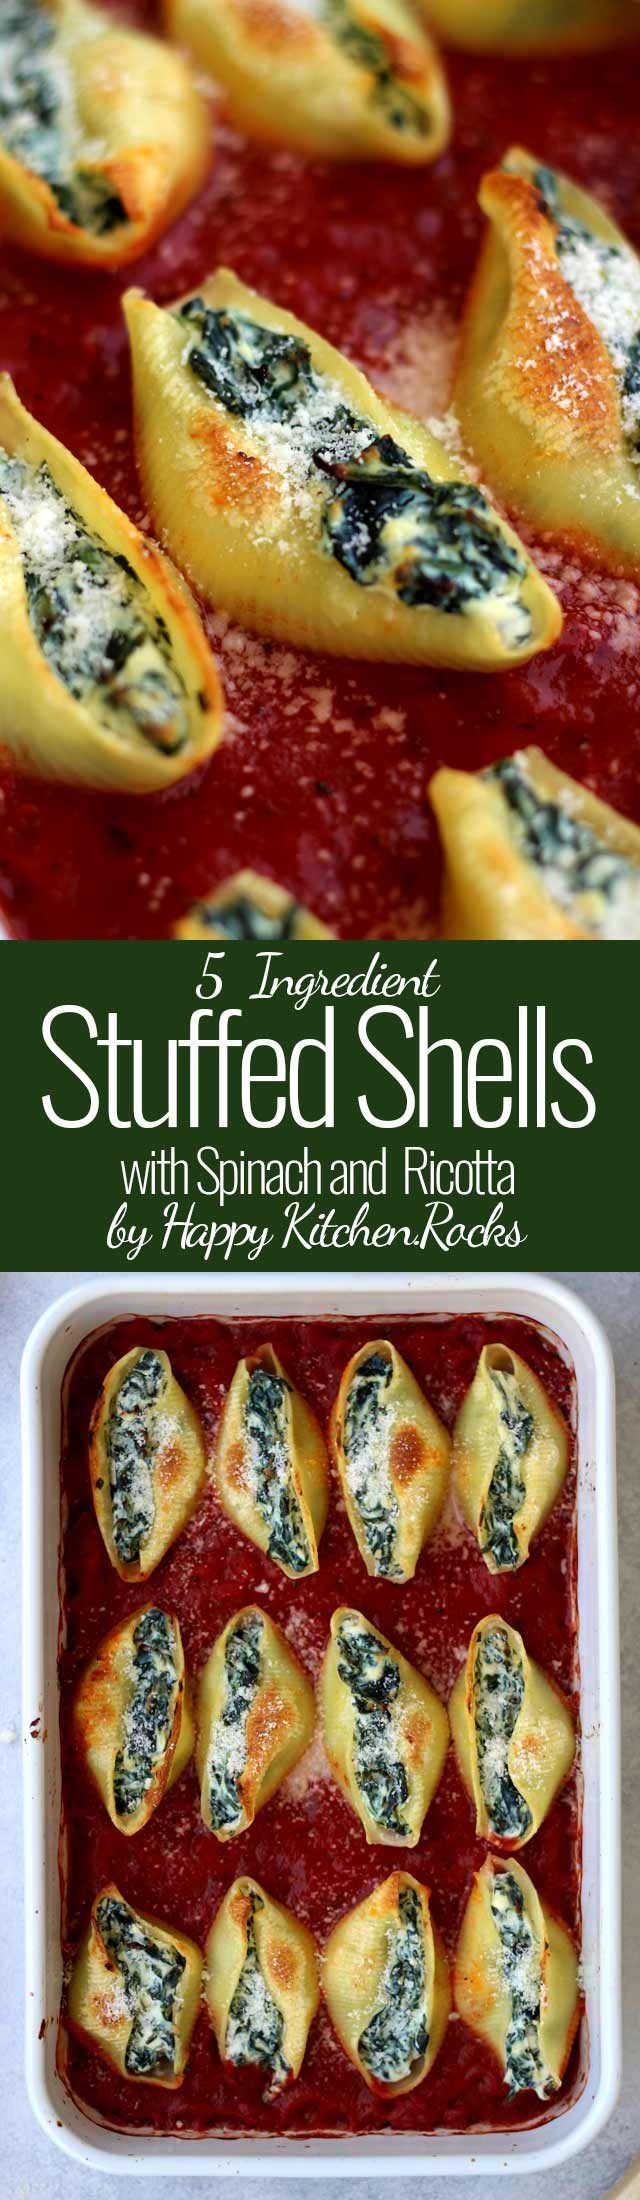 Super Easy 5 ingredient Stuffed Shells recipe with spinach and ricotta will take you no more than 30 minutes to make. Delicious, healthy, comforting and wholesome vegetarian pasta dinner your whole family will enjoy! #pasta #vegetarian #pastadinner #stuffedshells #healthydinner #marinara #spinach #ricotta #5ingredients #organic #recipe #recipes #food #easyrecipe #simplerecipe #comfortfood #healthyfood #healthyrecipe #dinner #simplerecipe #quickdinner #casserole